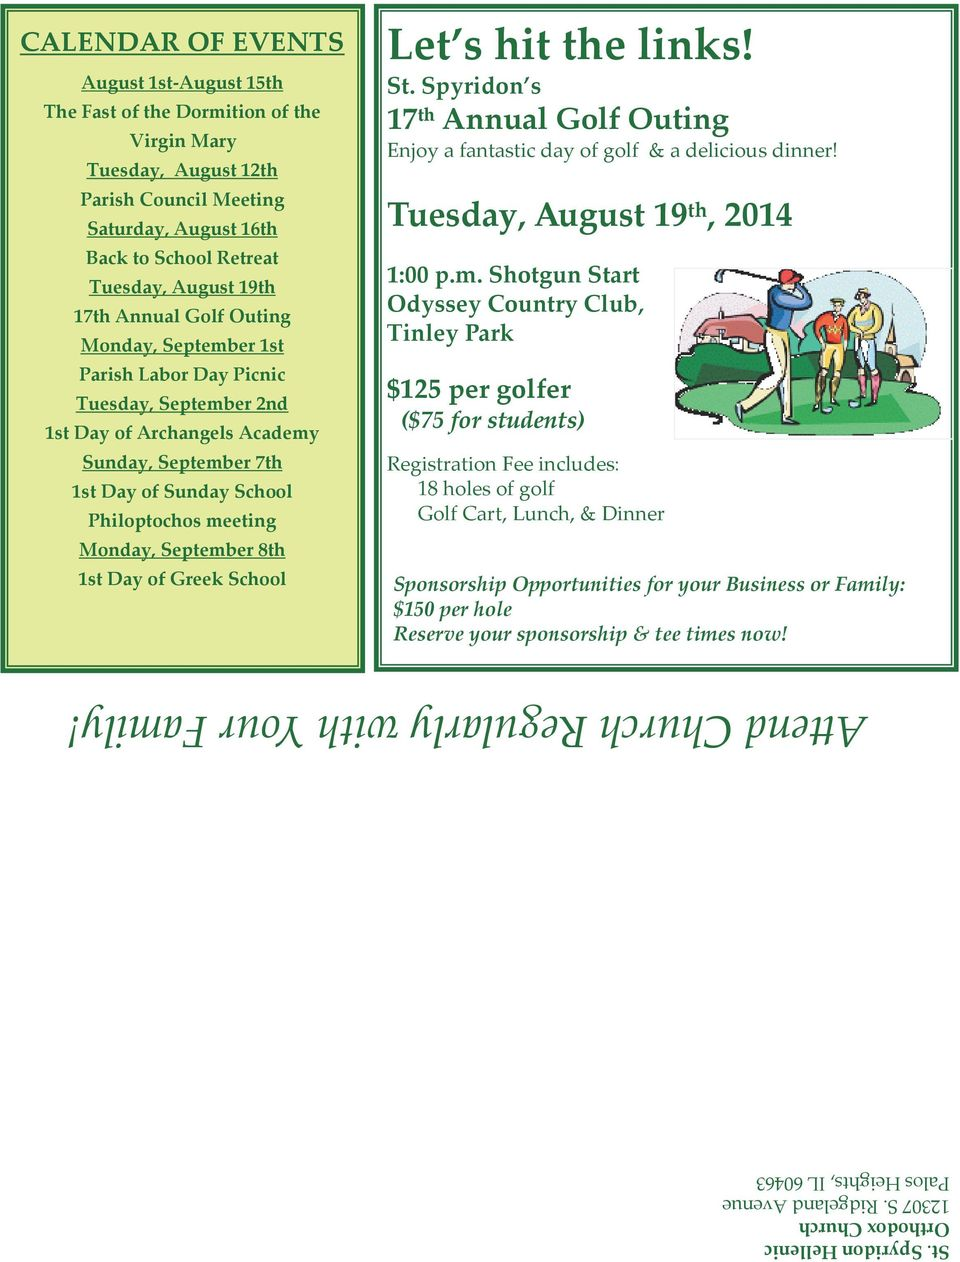 17th Annual Golf Outing Monday, September 1st Parish Labor Day Picnic Tuesday, September 2nd 1st Day of Archangels Academy Sunday, September 7th 1st Day of Sunday School Philoptochos meeting Monday,